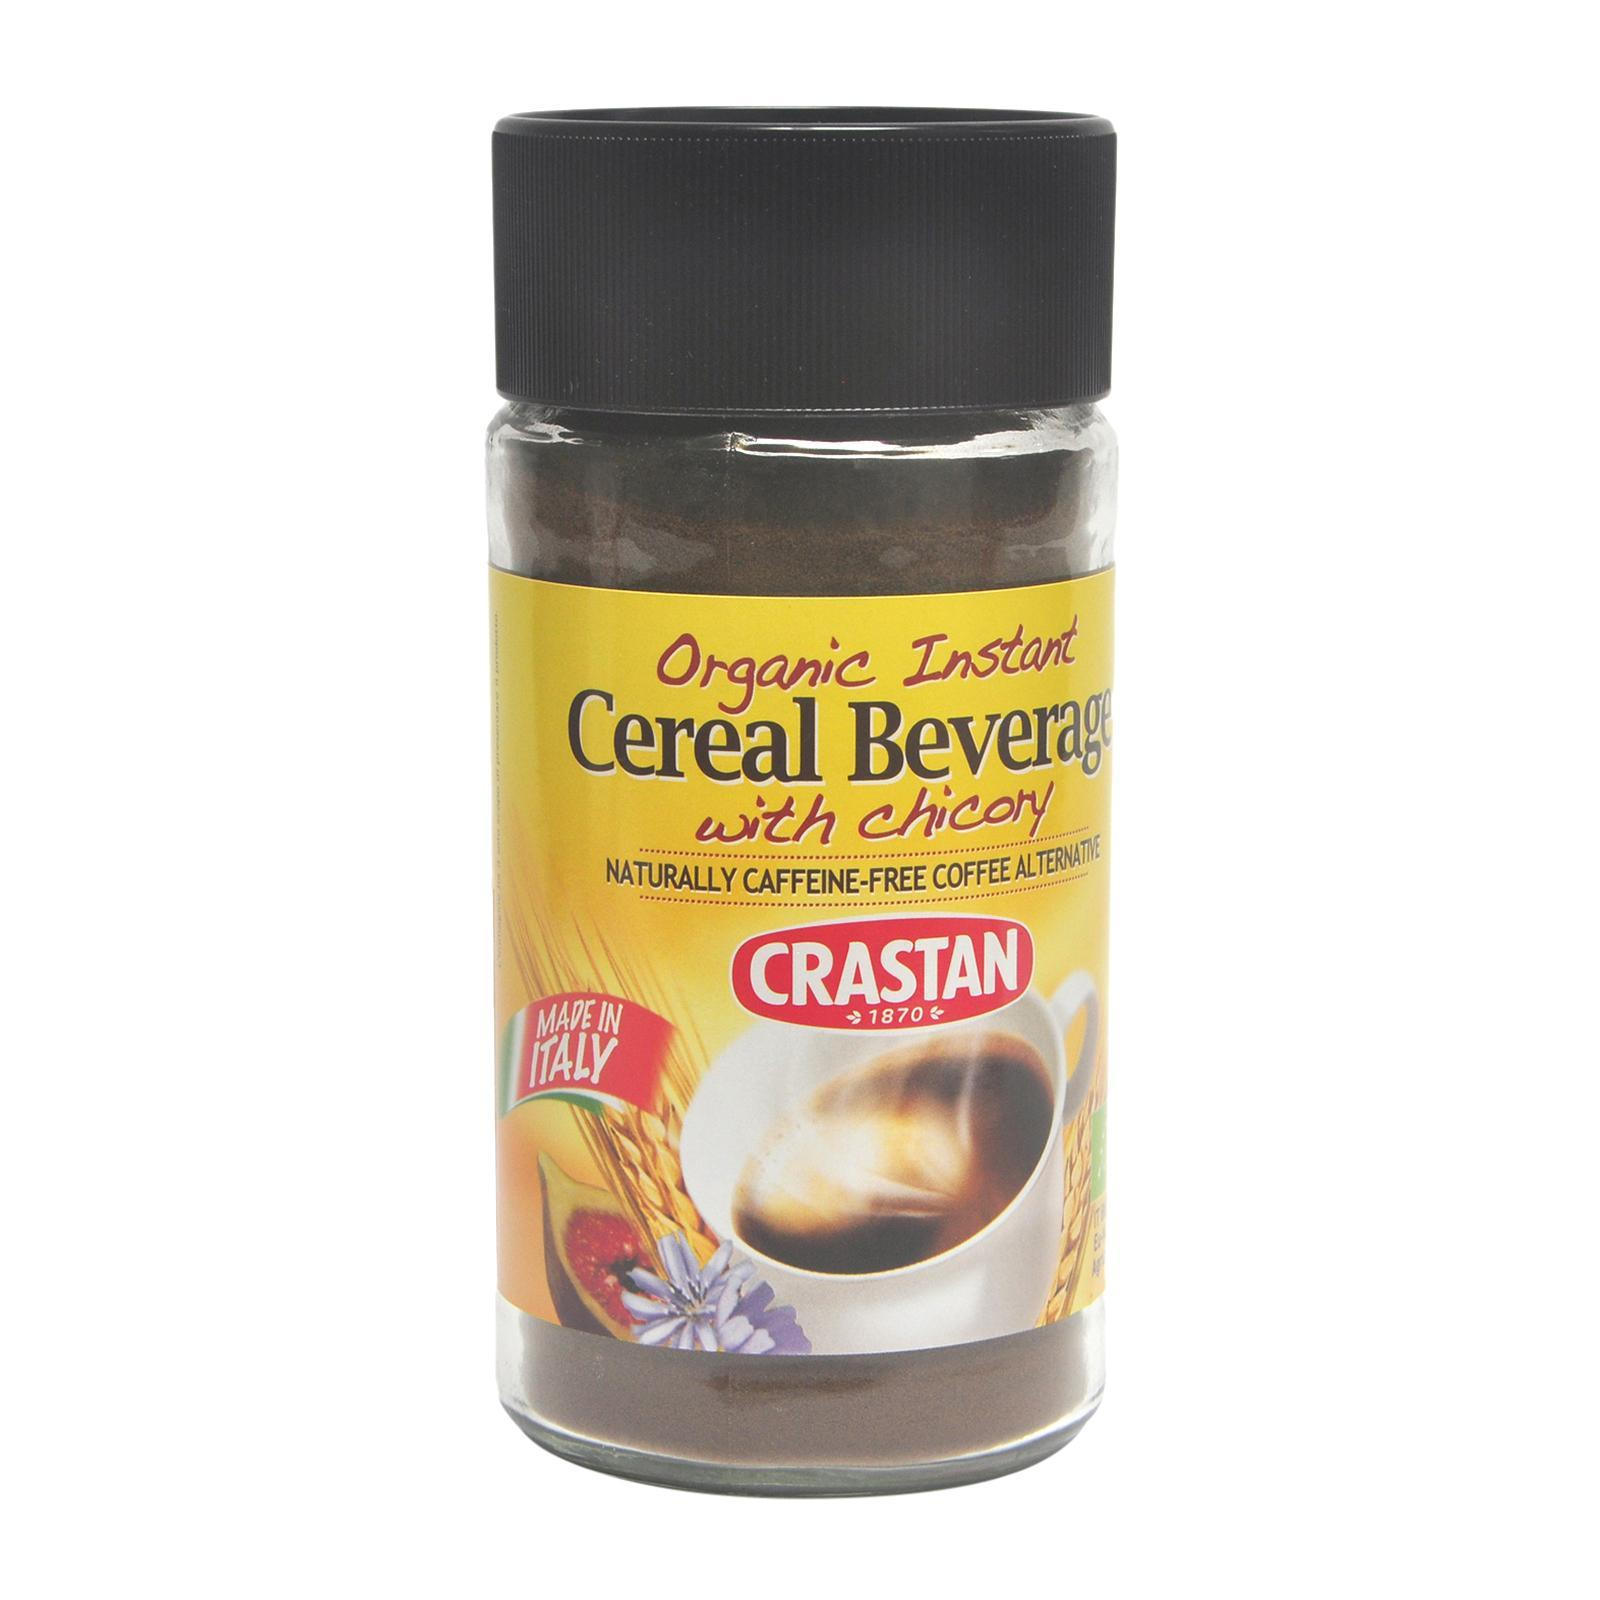 Crastan Organic Instant Cereal Beverage With Chicory By Redmart